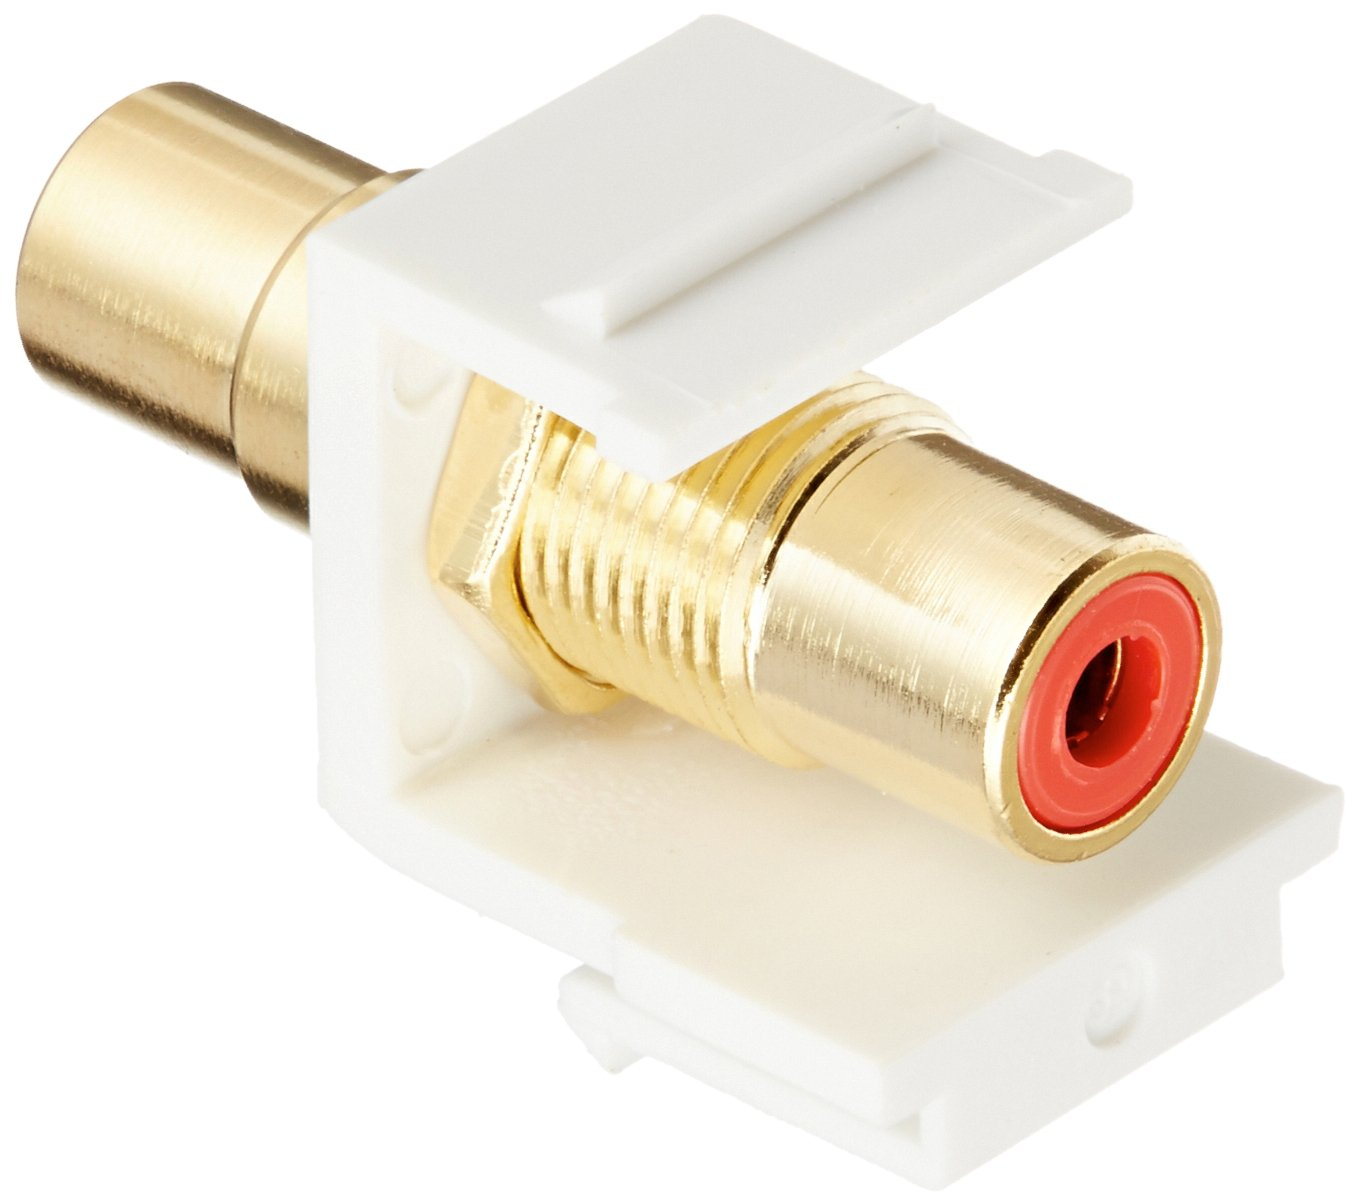 Monoprice 106548 Keystone Jack-Modular RCA with Red Center, White